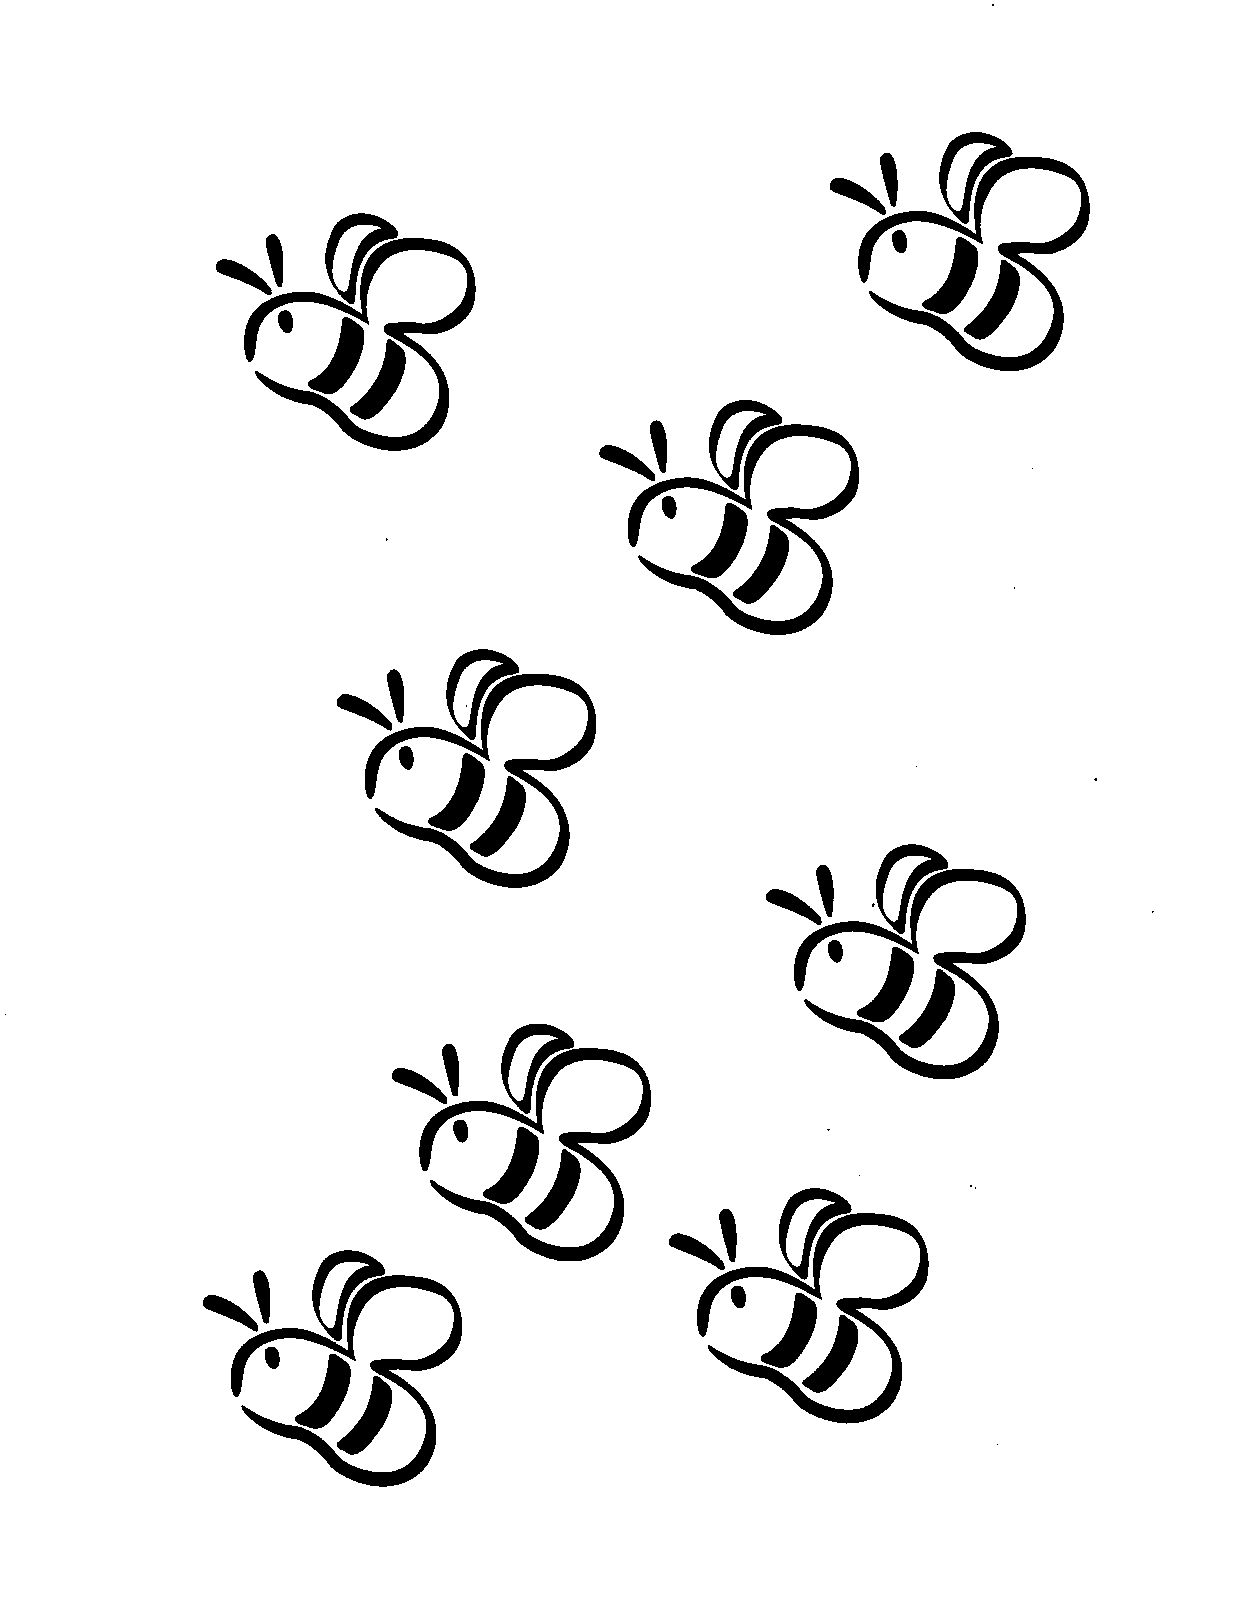 images for u003e bees black and white baby pinterest tattoo